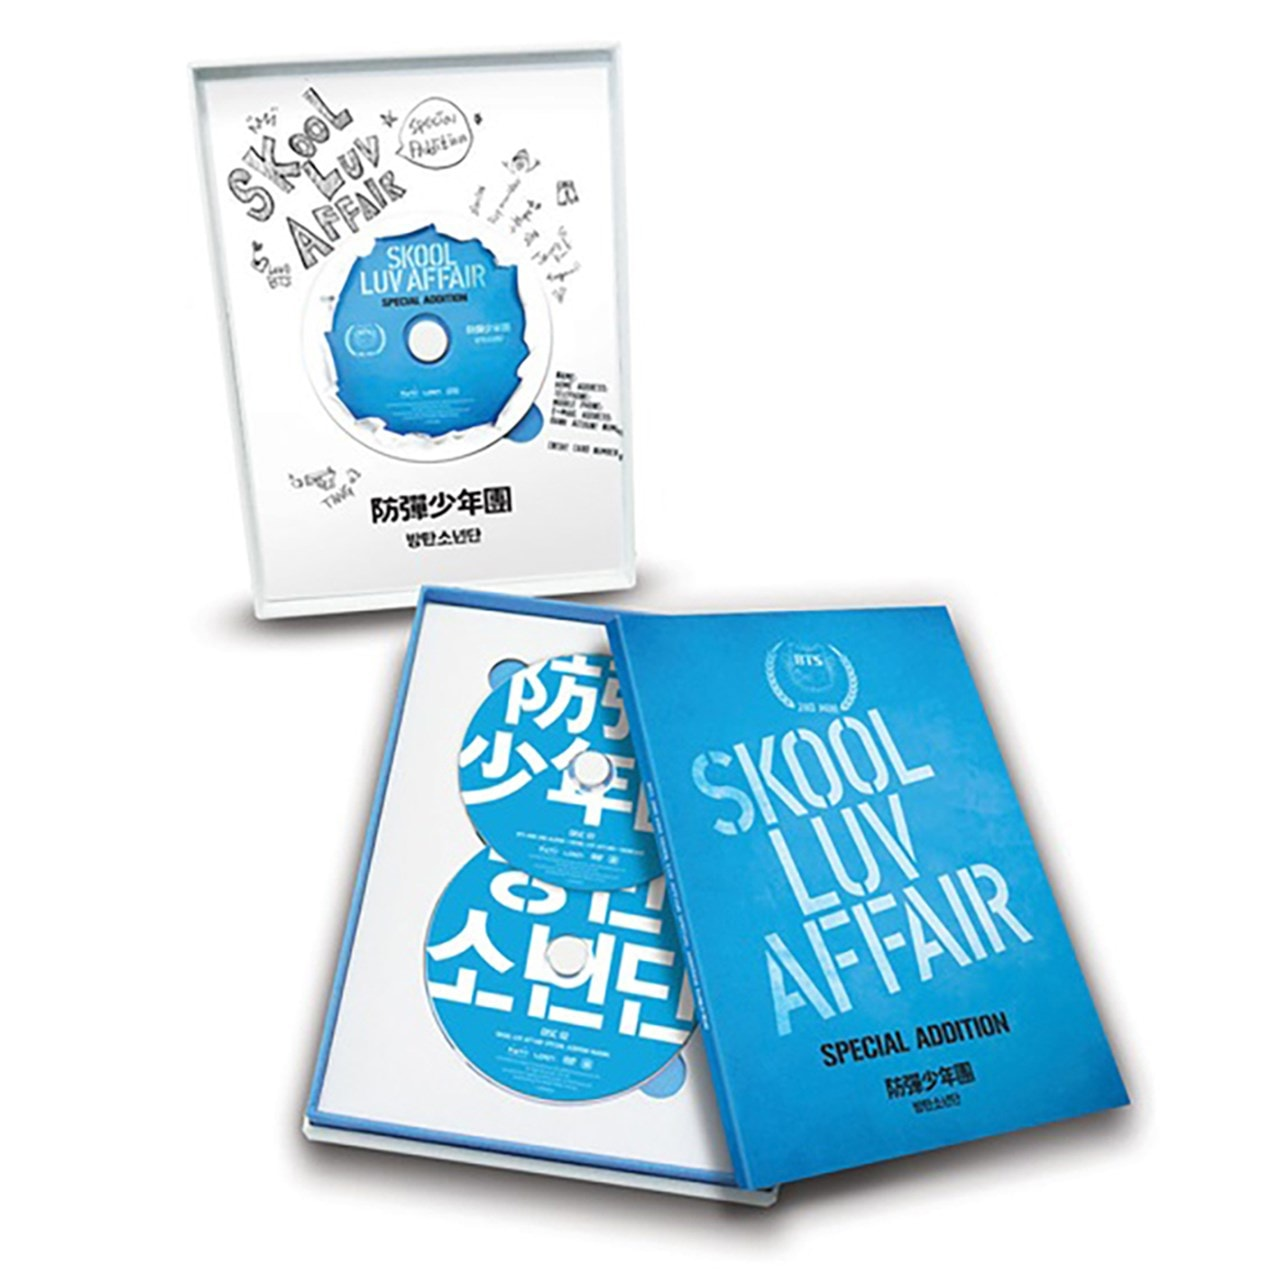 Skool Luv Affair - Special Addition - 4